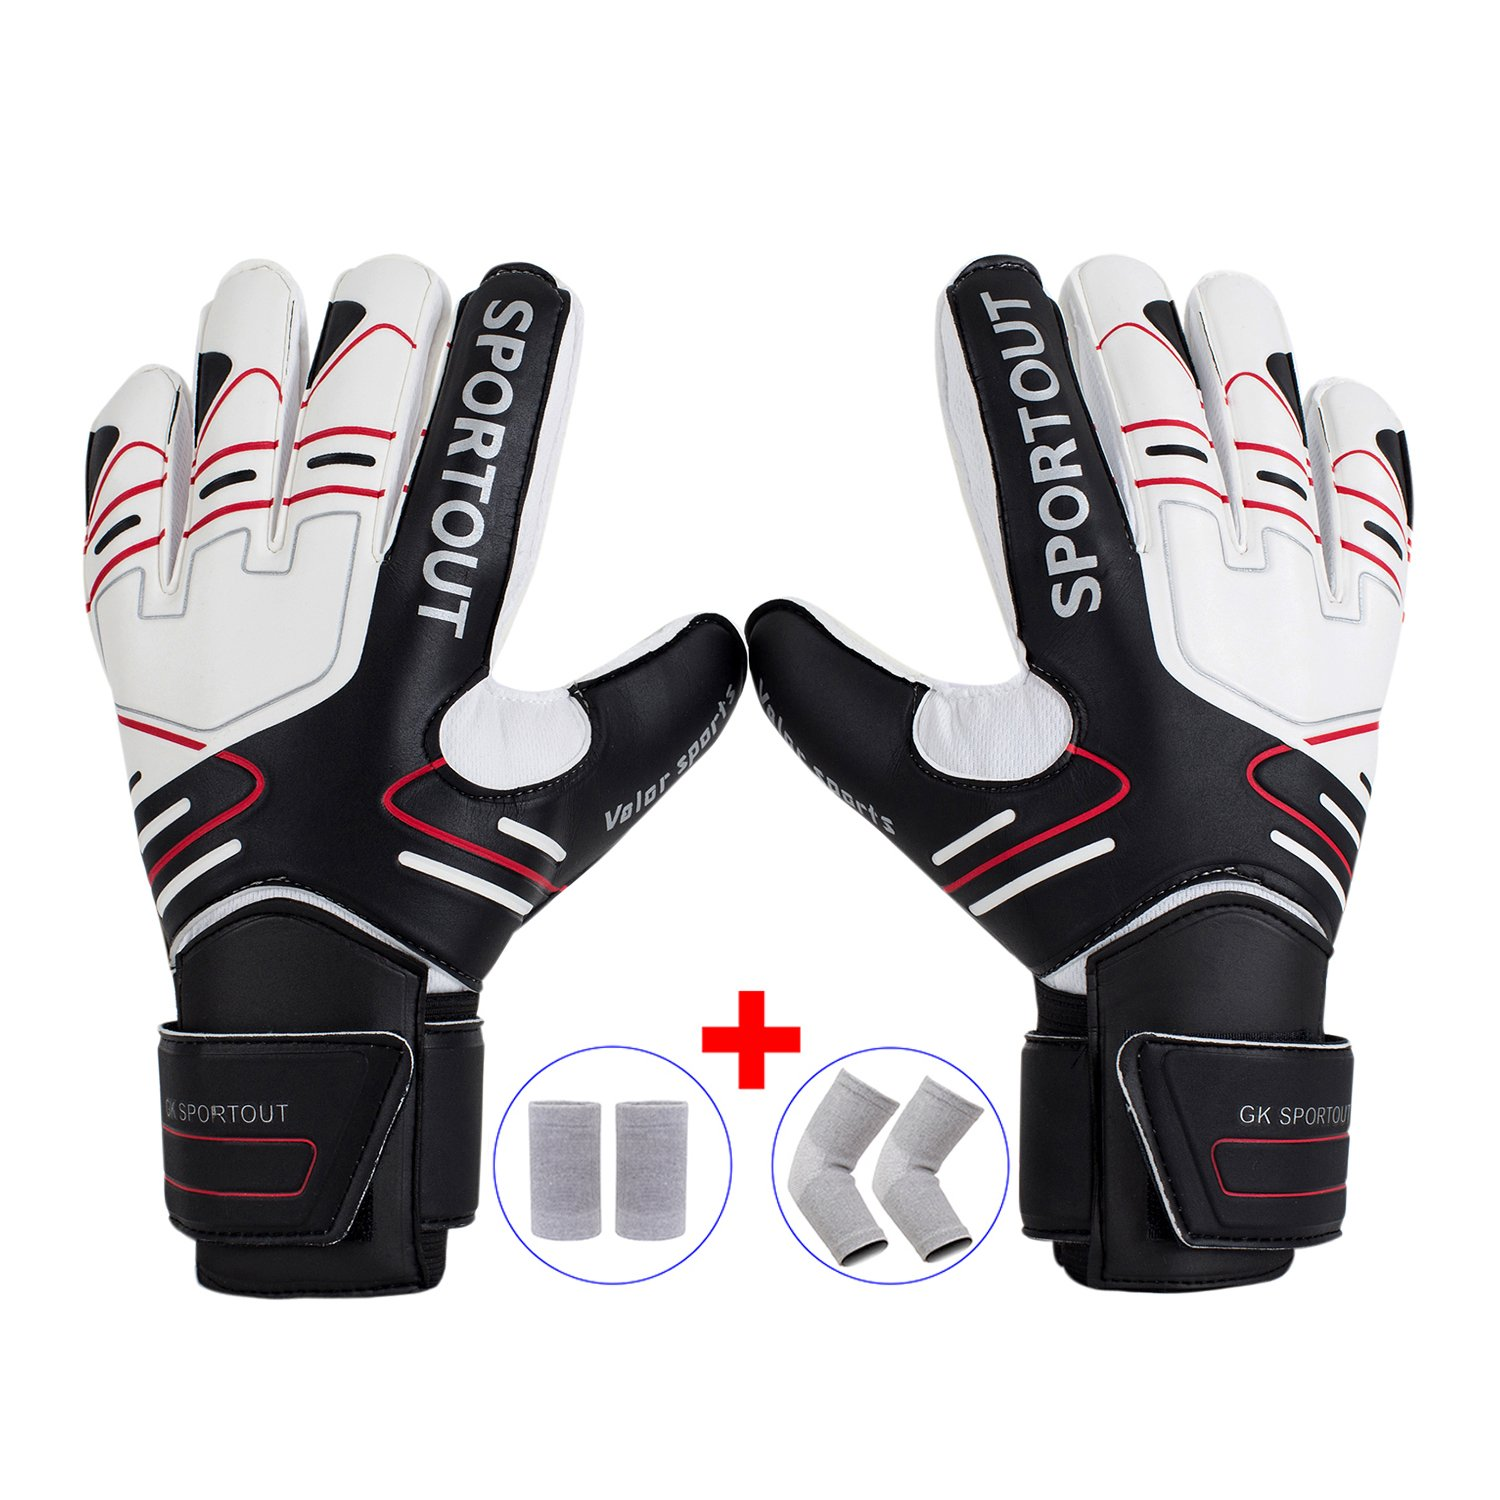 TimeBus Youth&Adult Goalie Goalkeeper Gloves,Strong Grip for The Toughest  Saves, With Finger Spines